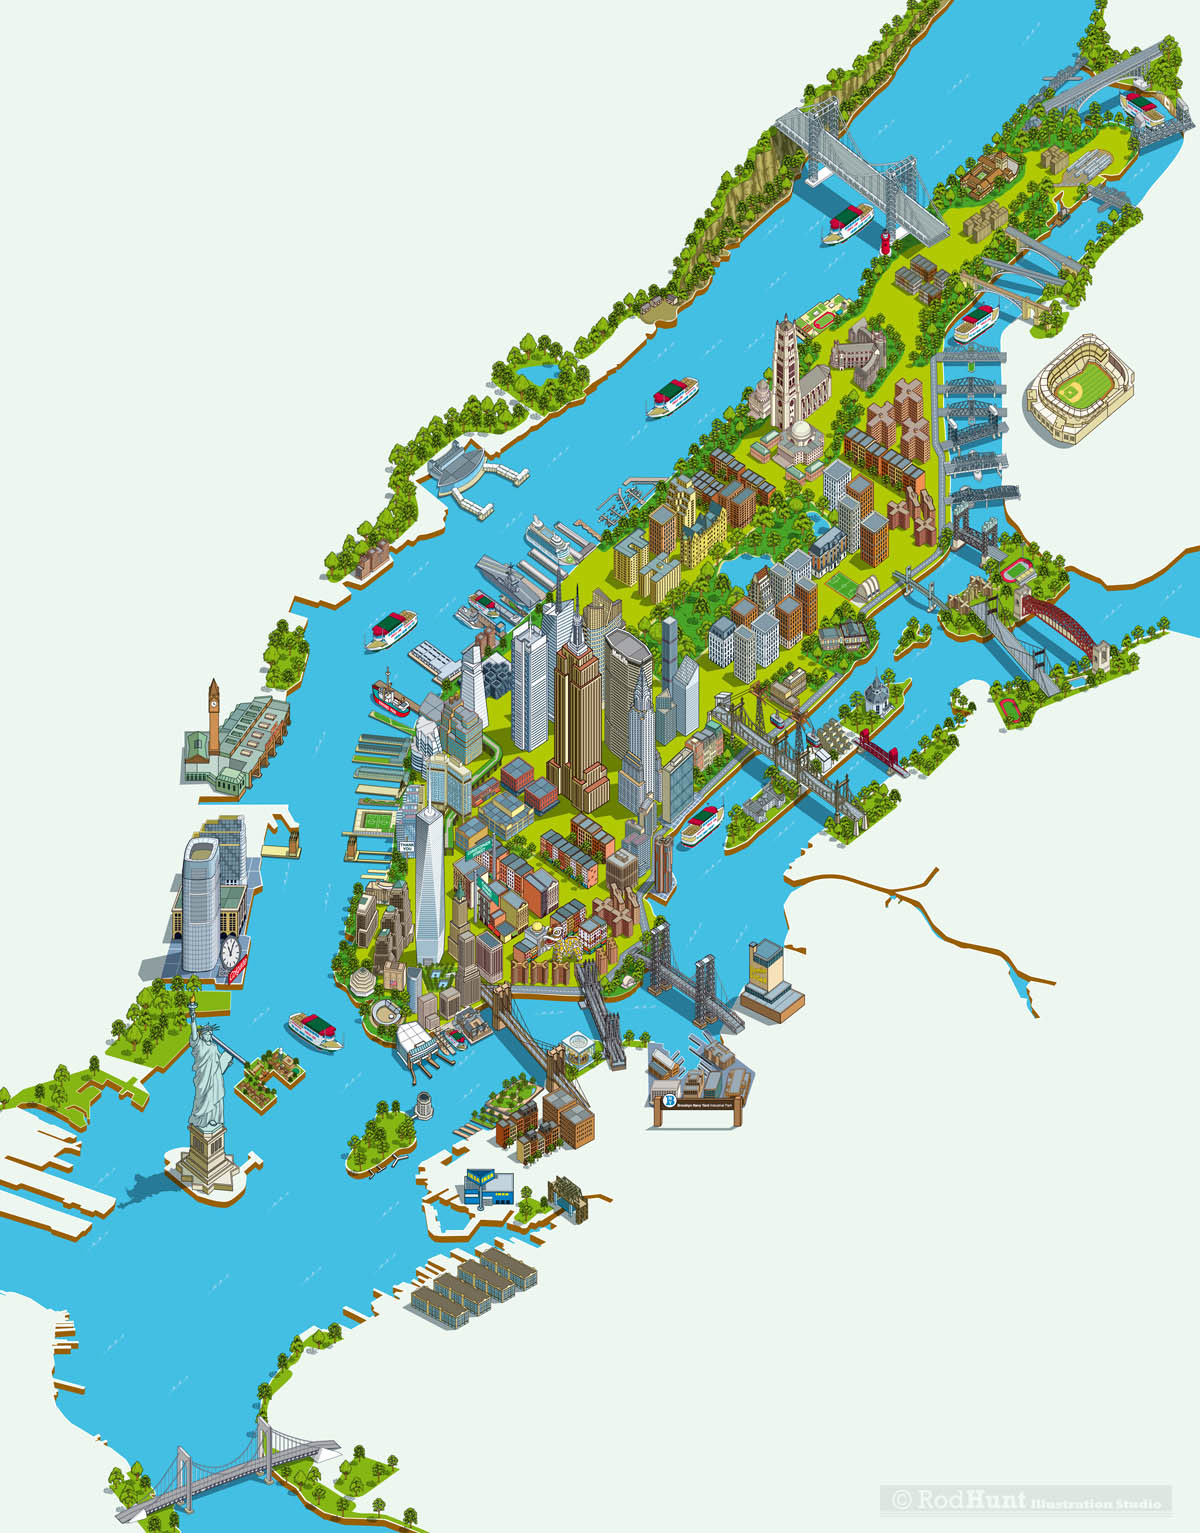 New York City Map Of Attractions.Rod Hunt Illustration And Illustrated Maps Map Illustrator